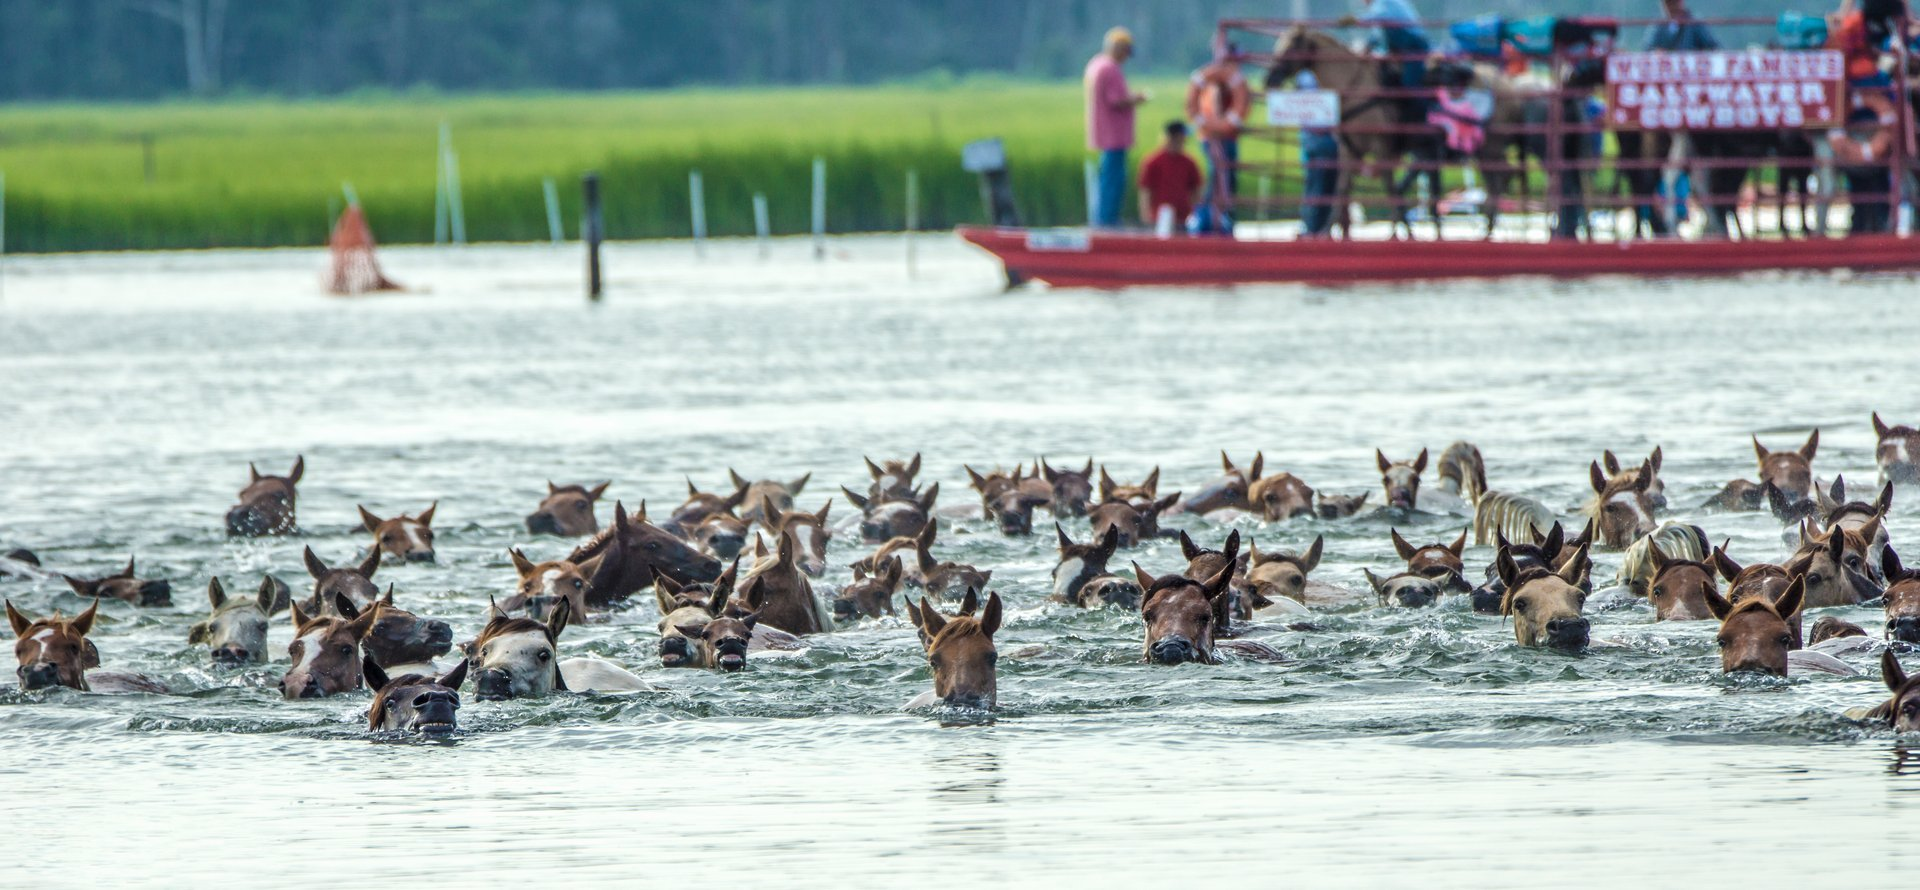 Best time for Chincoteague Pony Swim in Virginia 2020